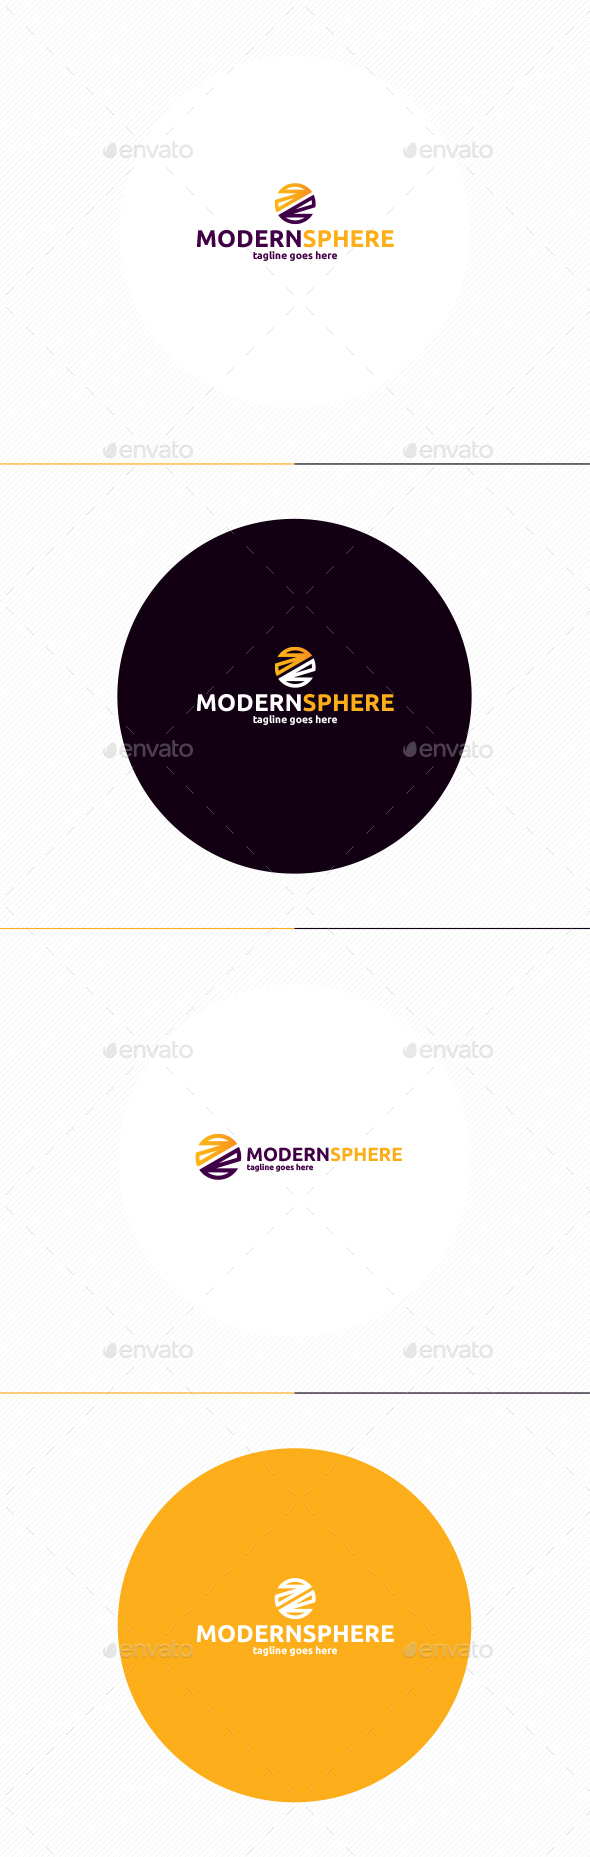 Modern Sphere Logo - Vector Abstract